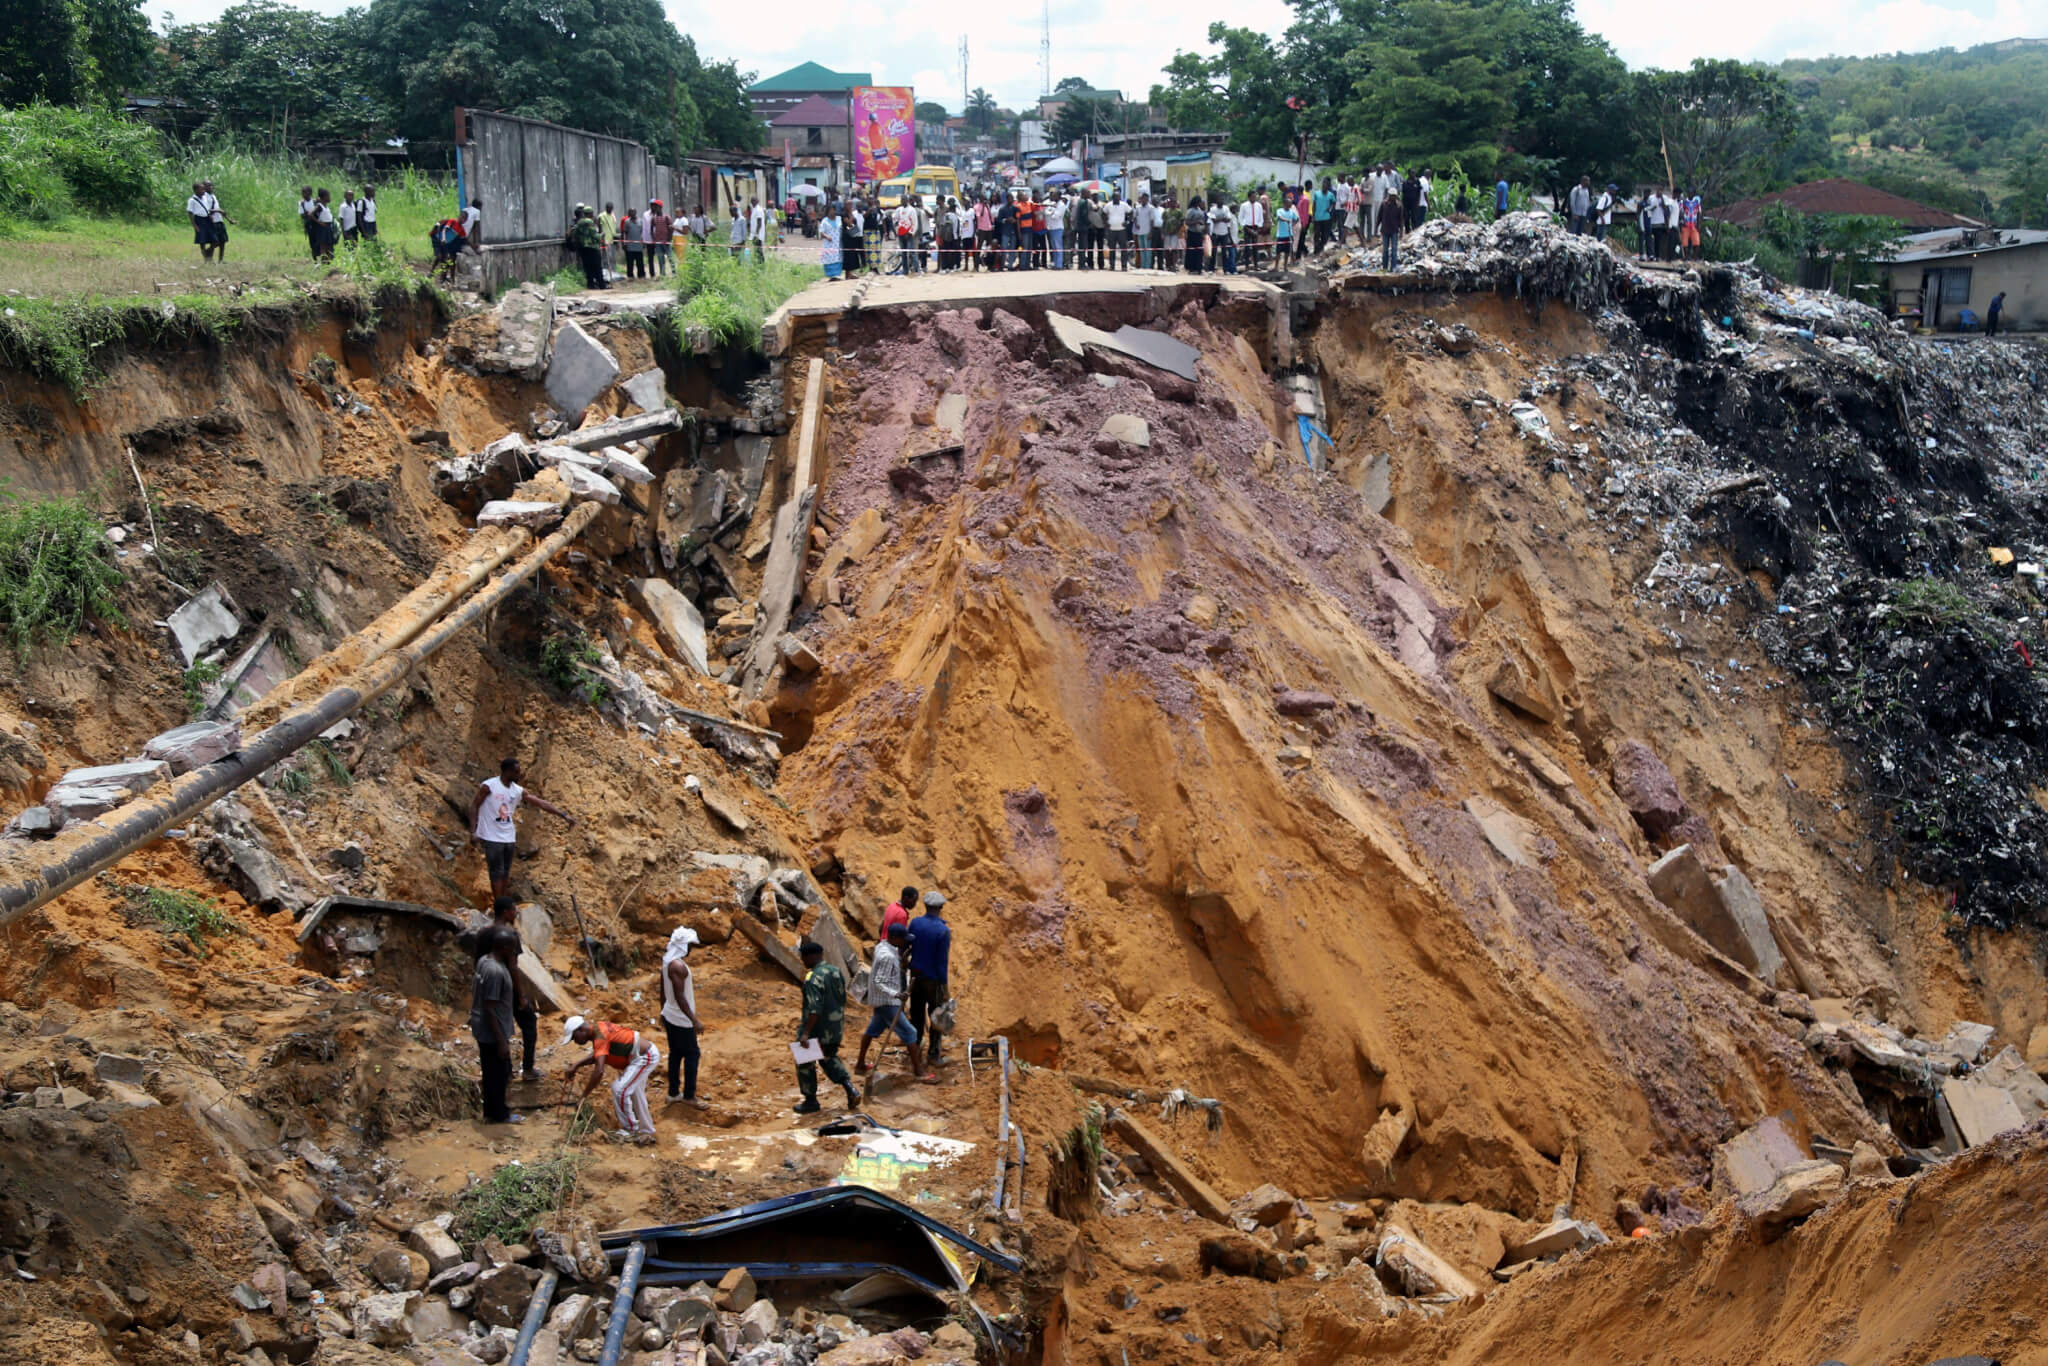 Residents of Kinshasa search for bodies in debris of landslide.